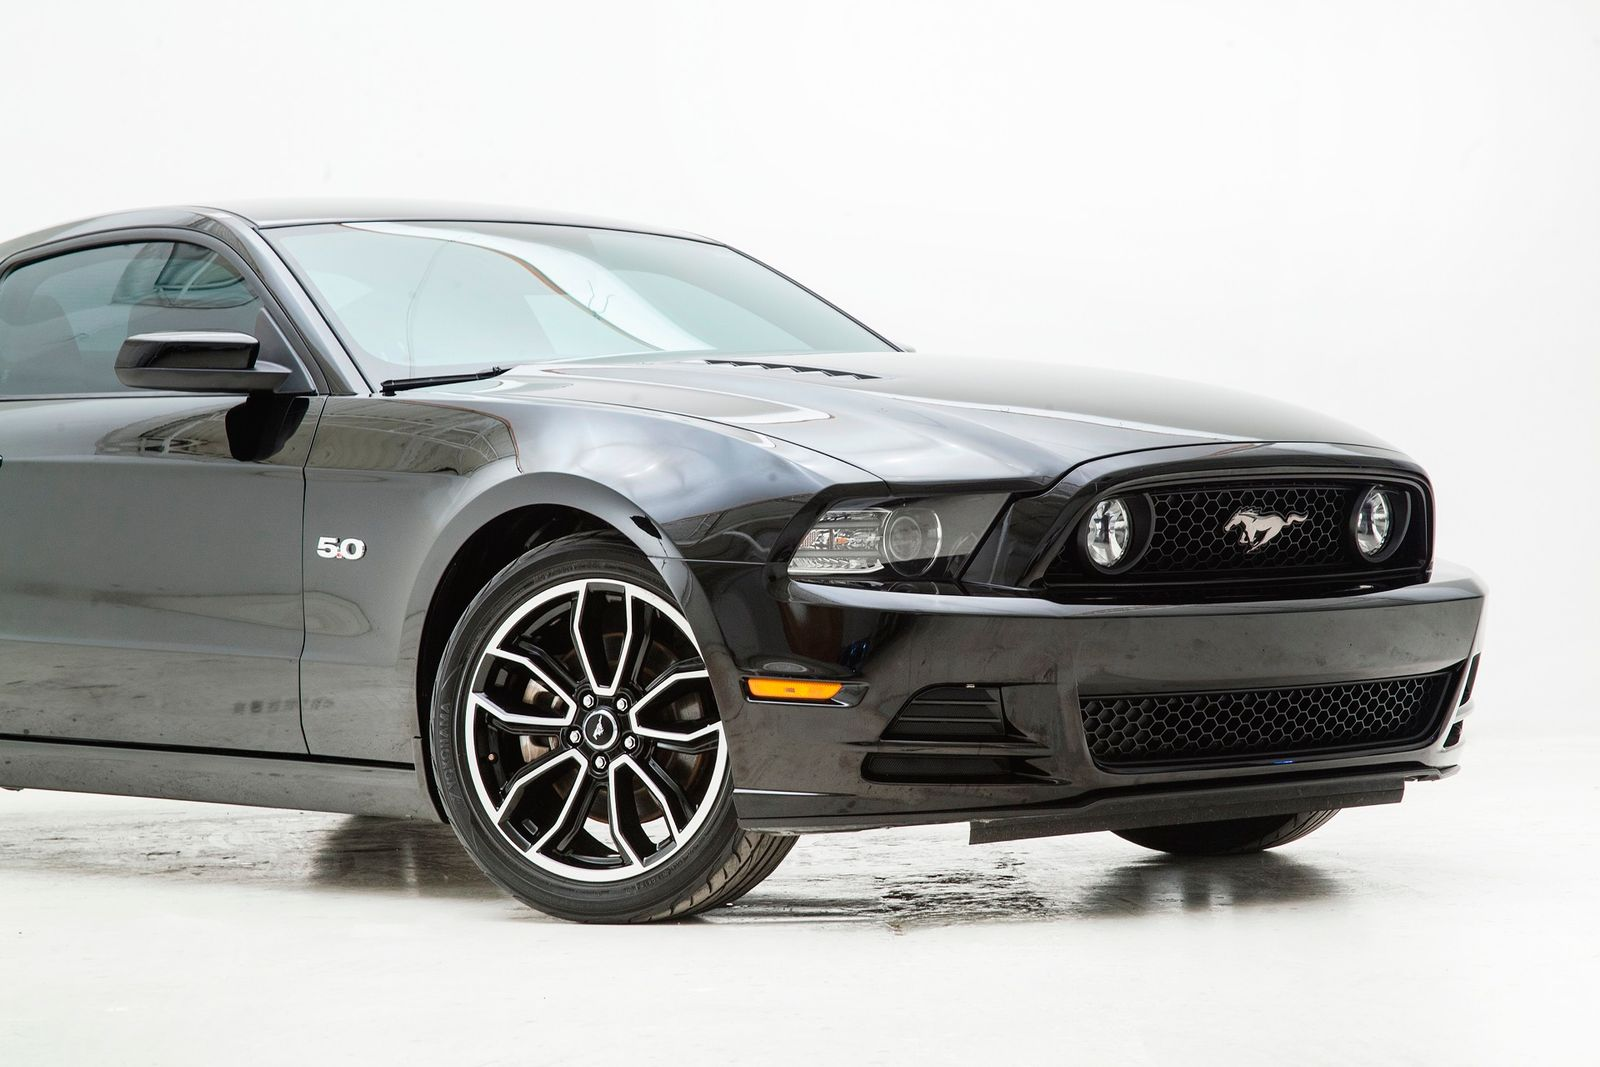 Used 2013 Black Ford Mustang  GT Premium Photo 4